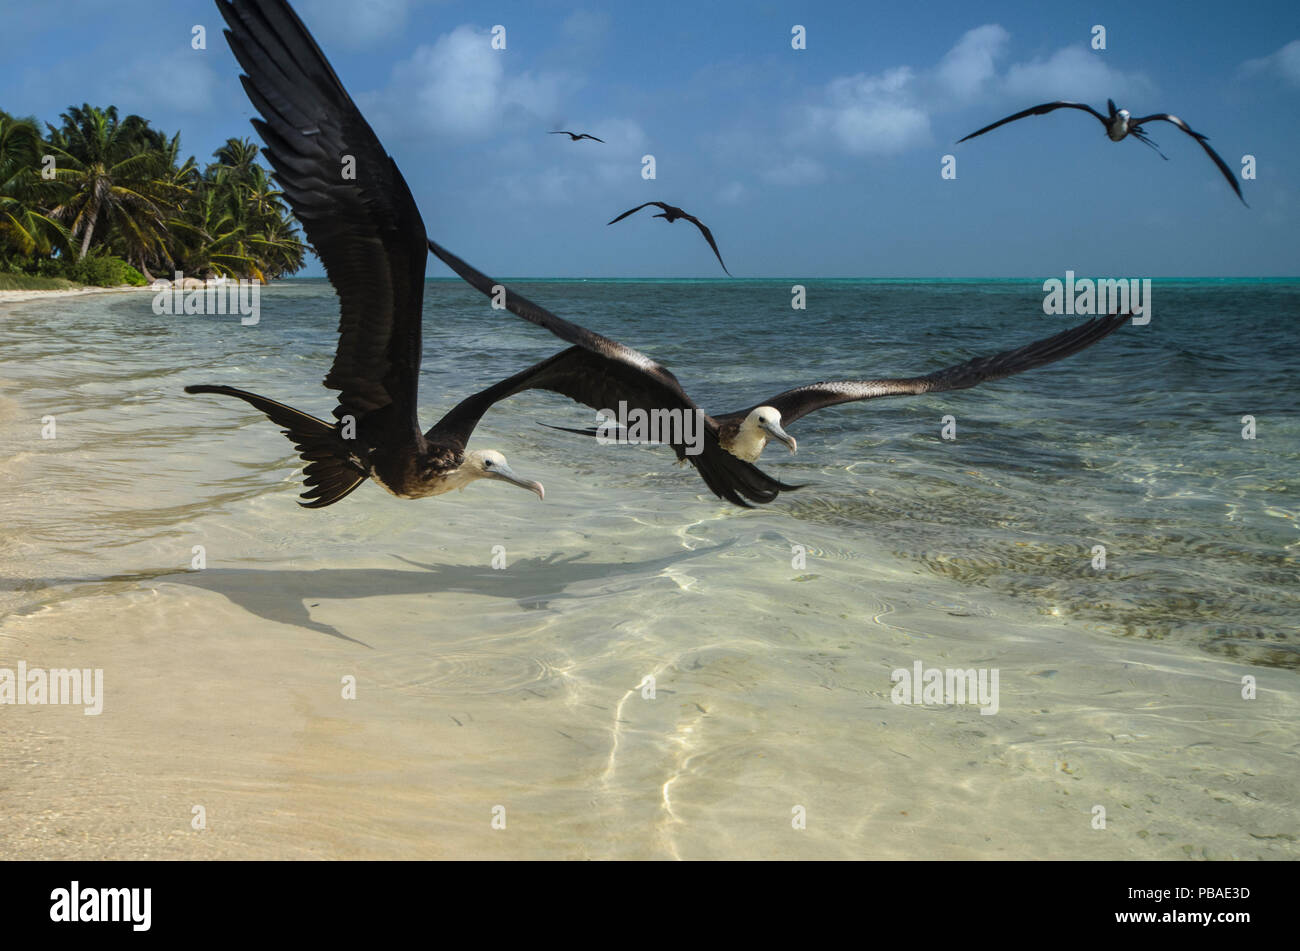 Magnificent frigatebirds (Fregata magnificens) in flight over shallow water, Halfmoon Caye, Lighthouse Reef Atoll, Belize. - Stock Image